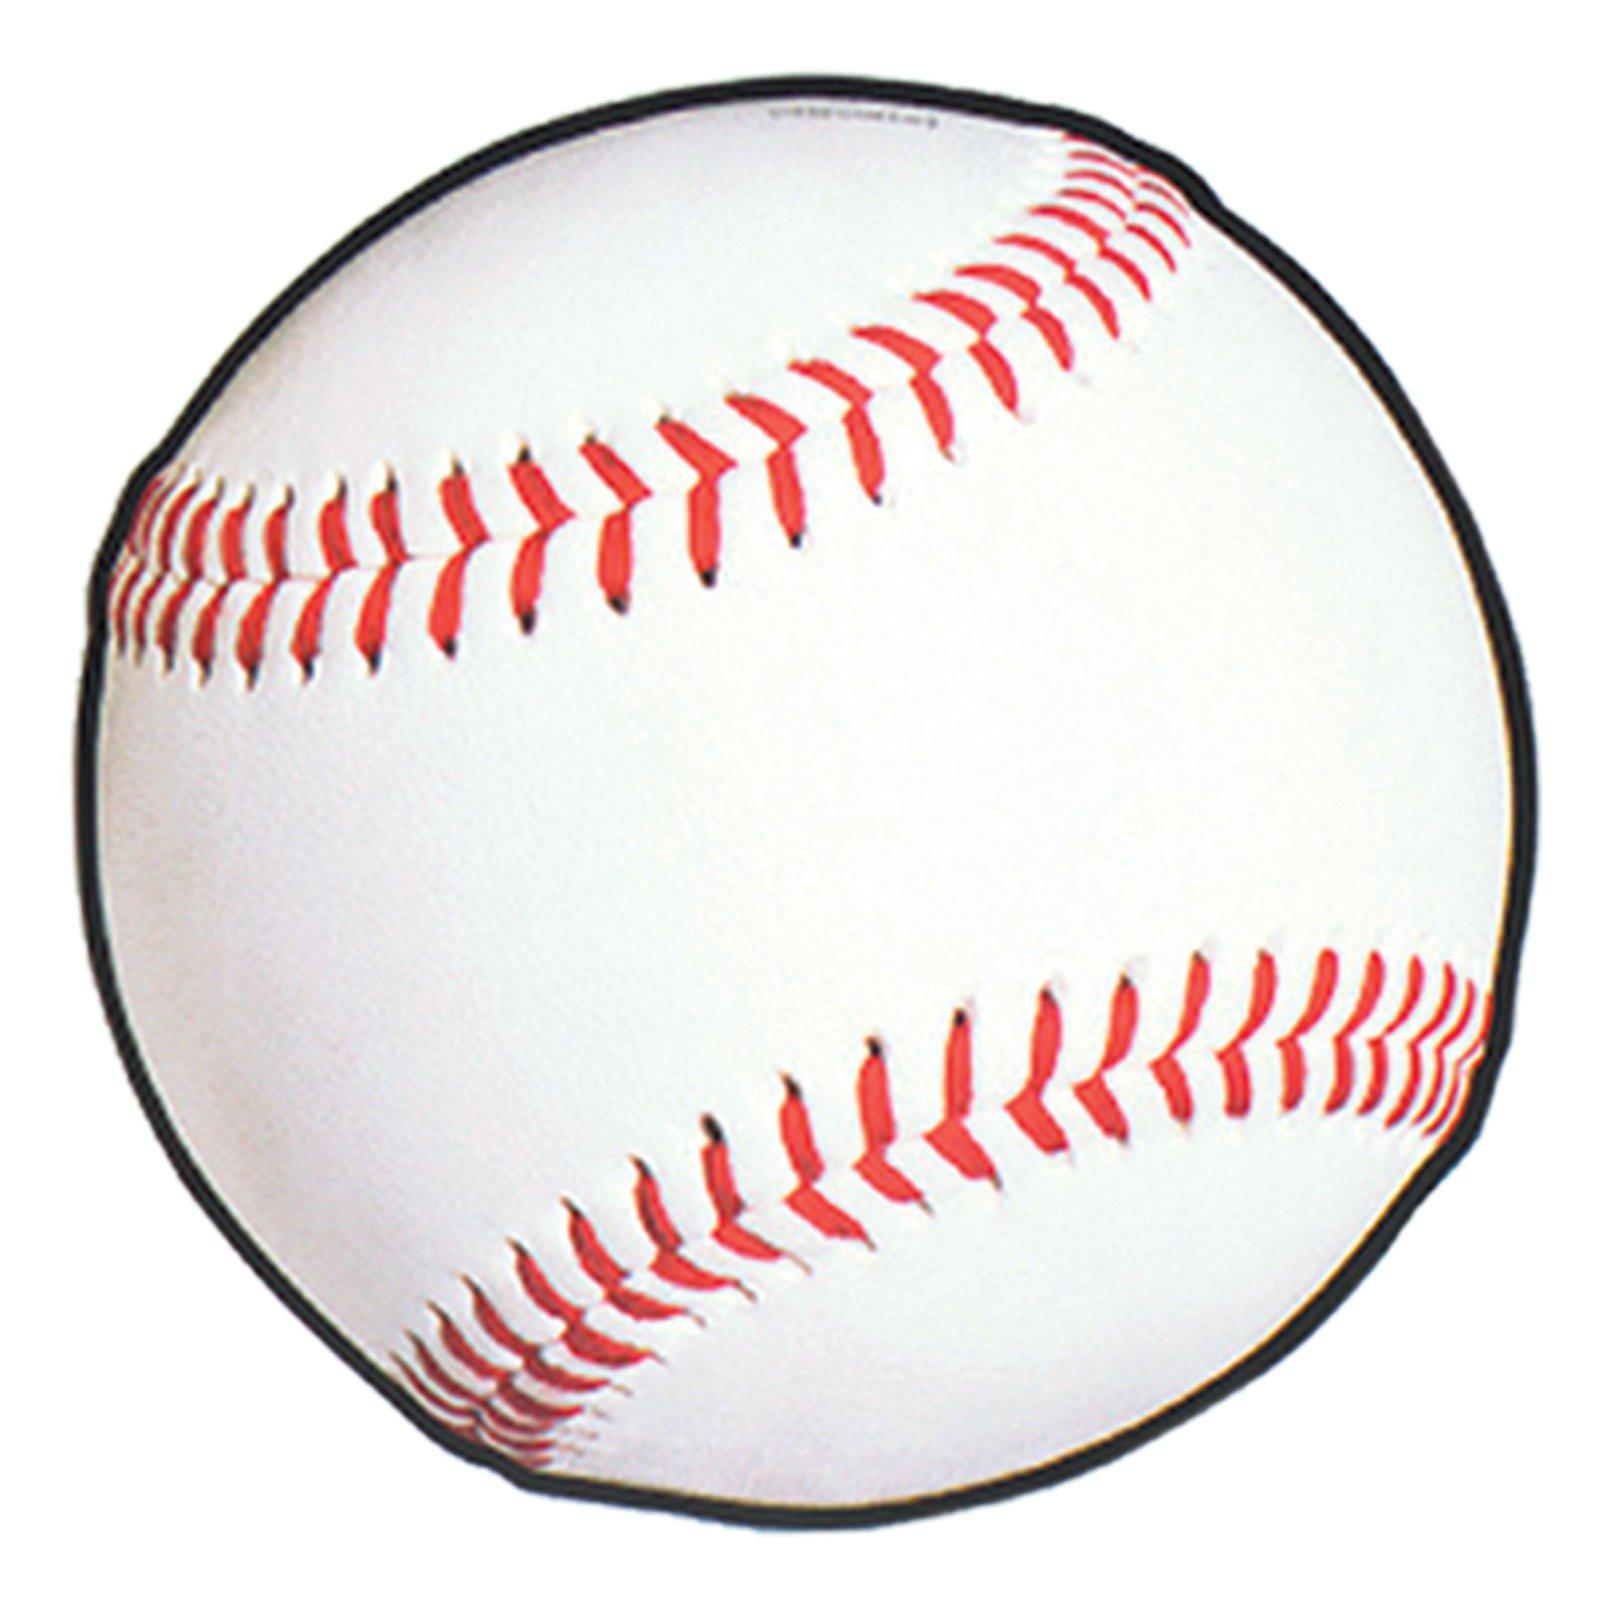 Baseball clipart free download clip free download Free Baseball Cliparts, Download Free Clip Art, Free Clip Art on ... clip free download